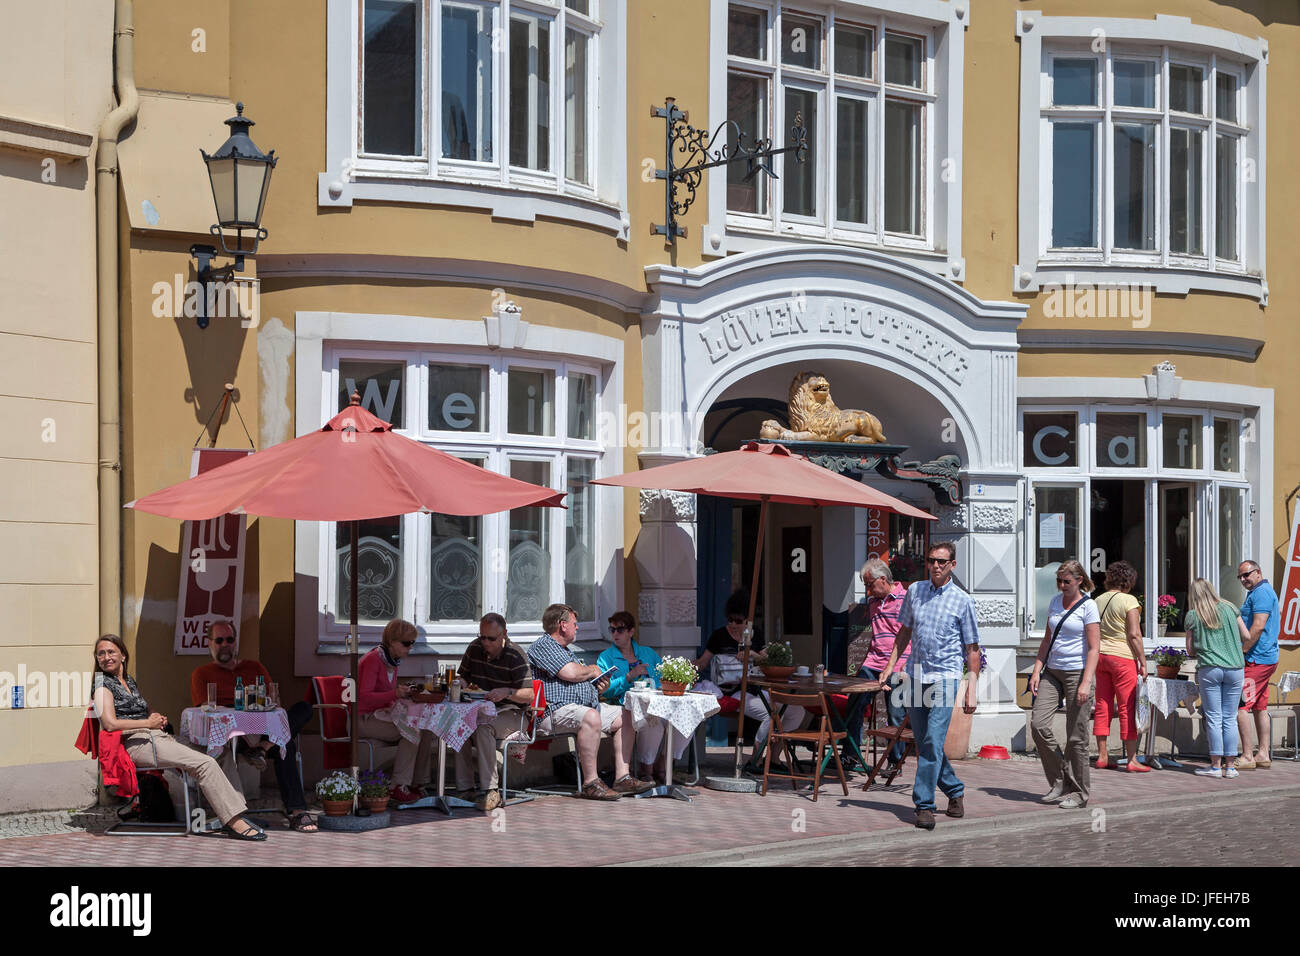 Shops and cafés on the marketplace, Hanseatic town Wismar, Mecklenburg, Mecklenburg-West Pomerania, Germany - Stock Image